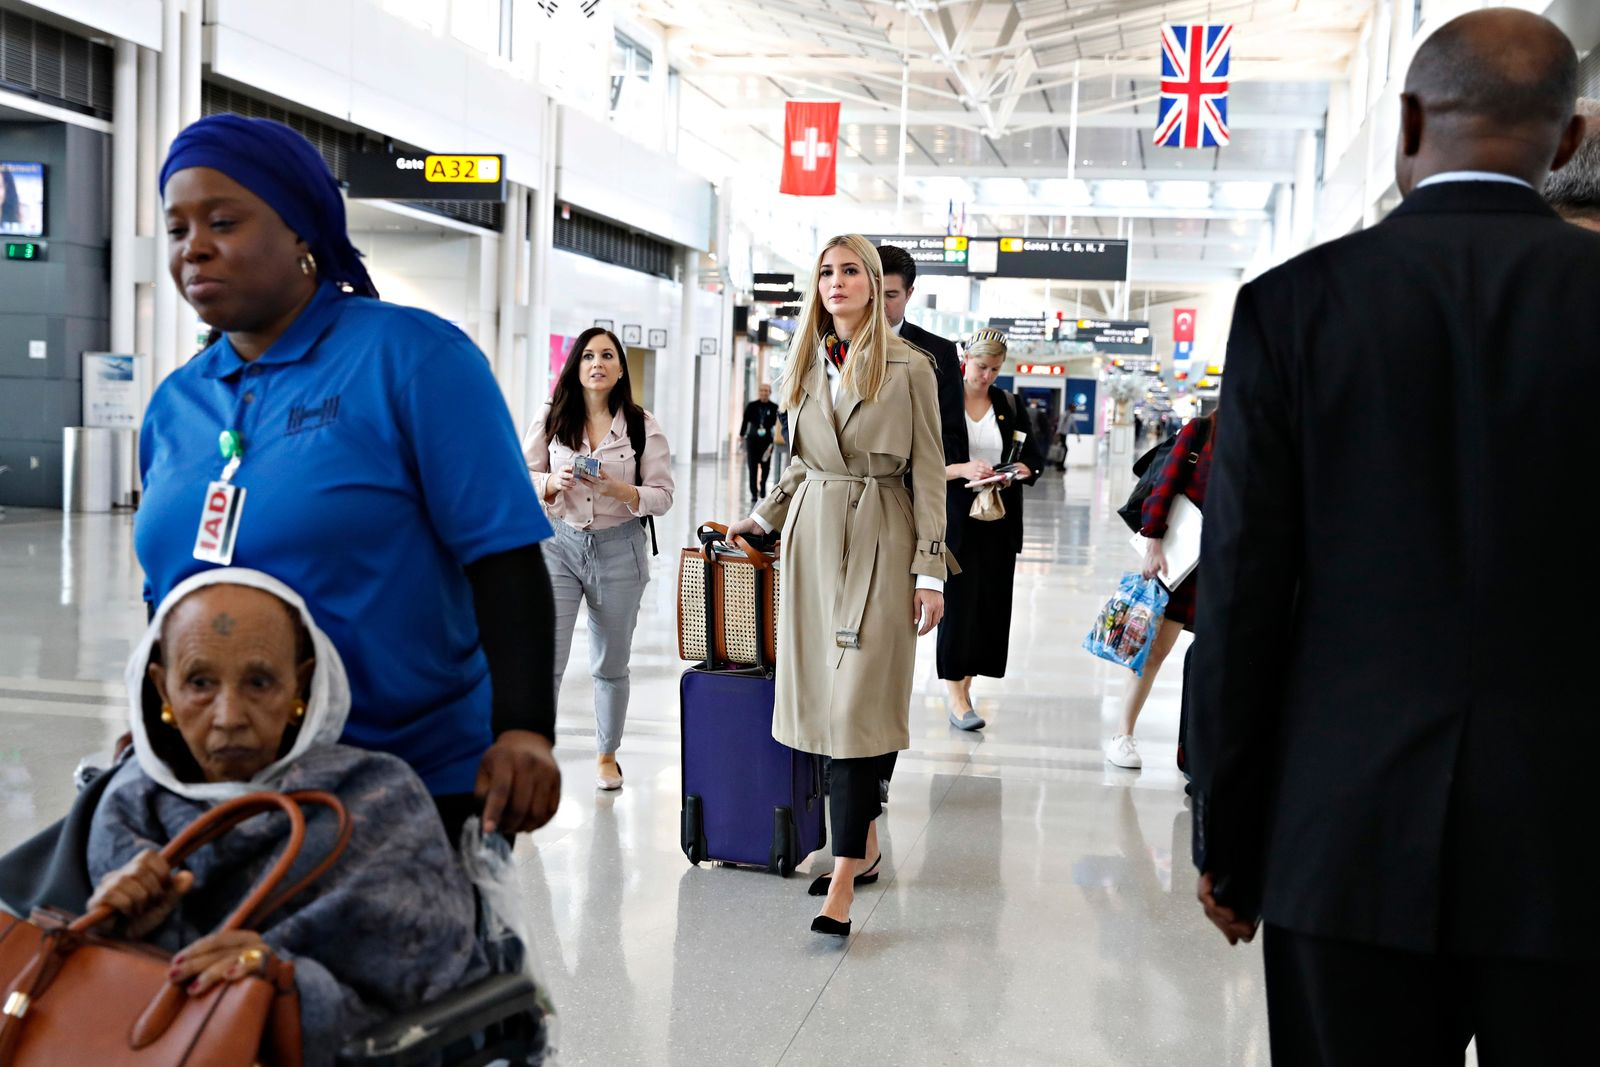 Ivanka Trump, center, walks through a terminal of Dulles International Airport, in Sterling, Va., Saturday April 13, 2019, to board a flight to Ethiopia. (AP Photo/Jacquelyn Martin)